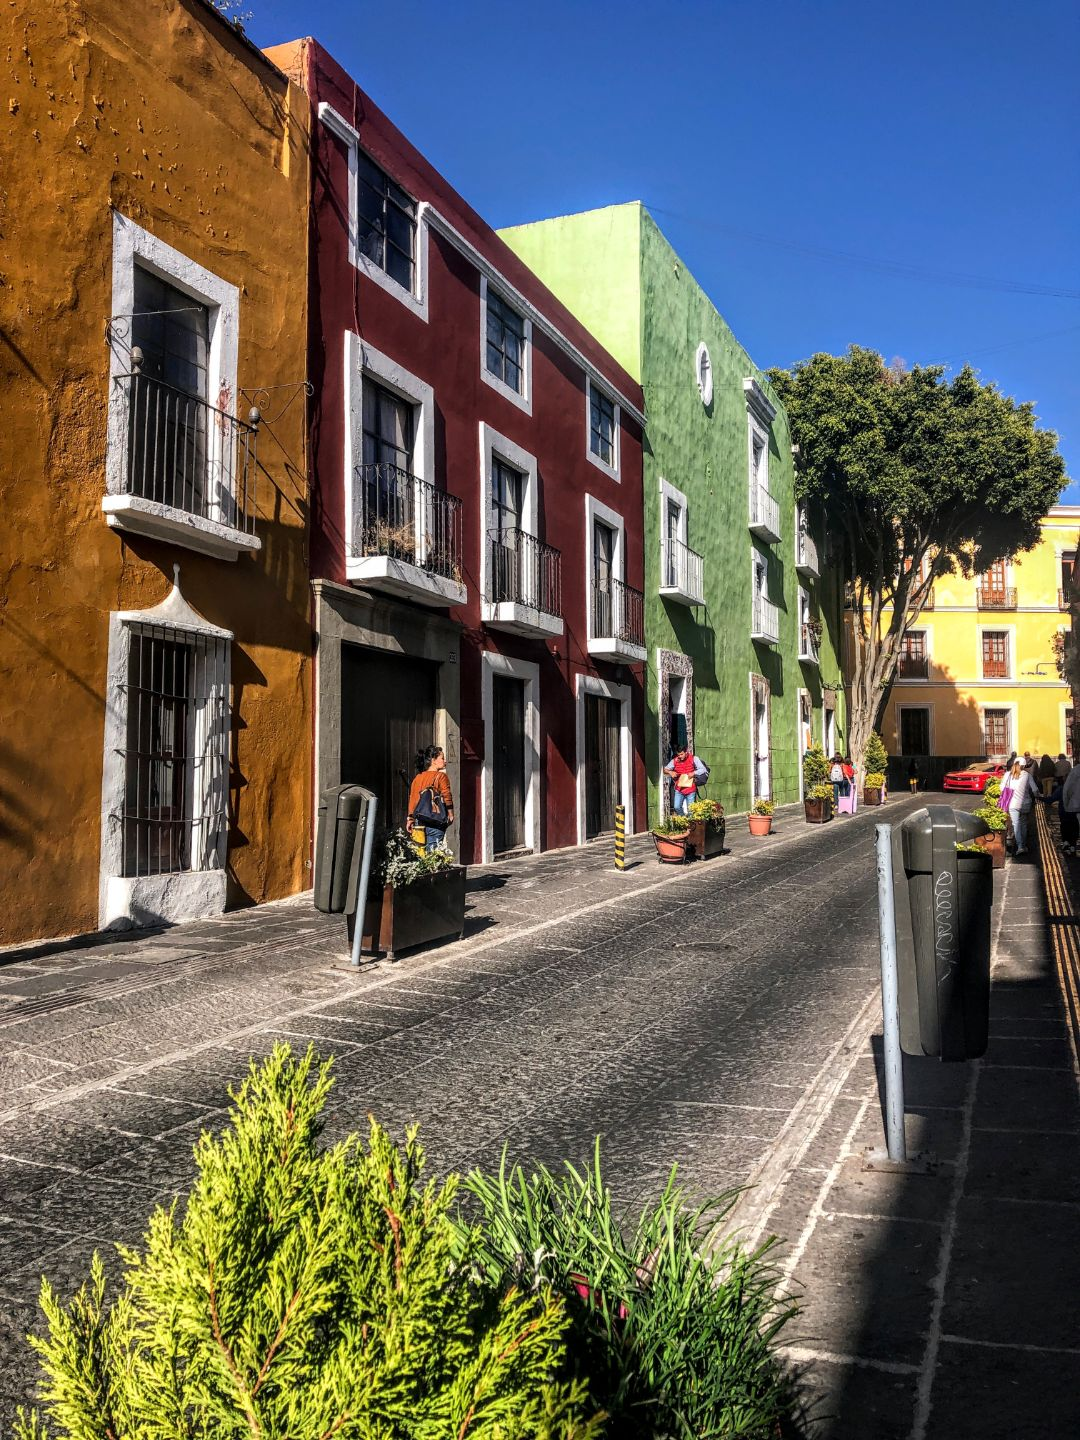 street with orange, red, and light green colonial buildings